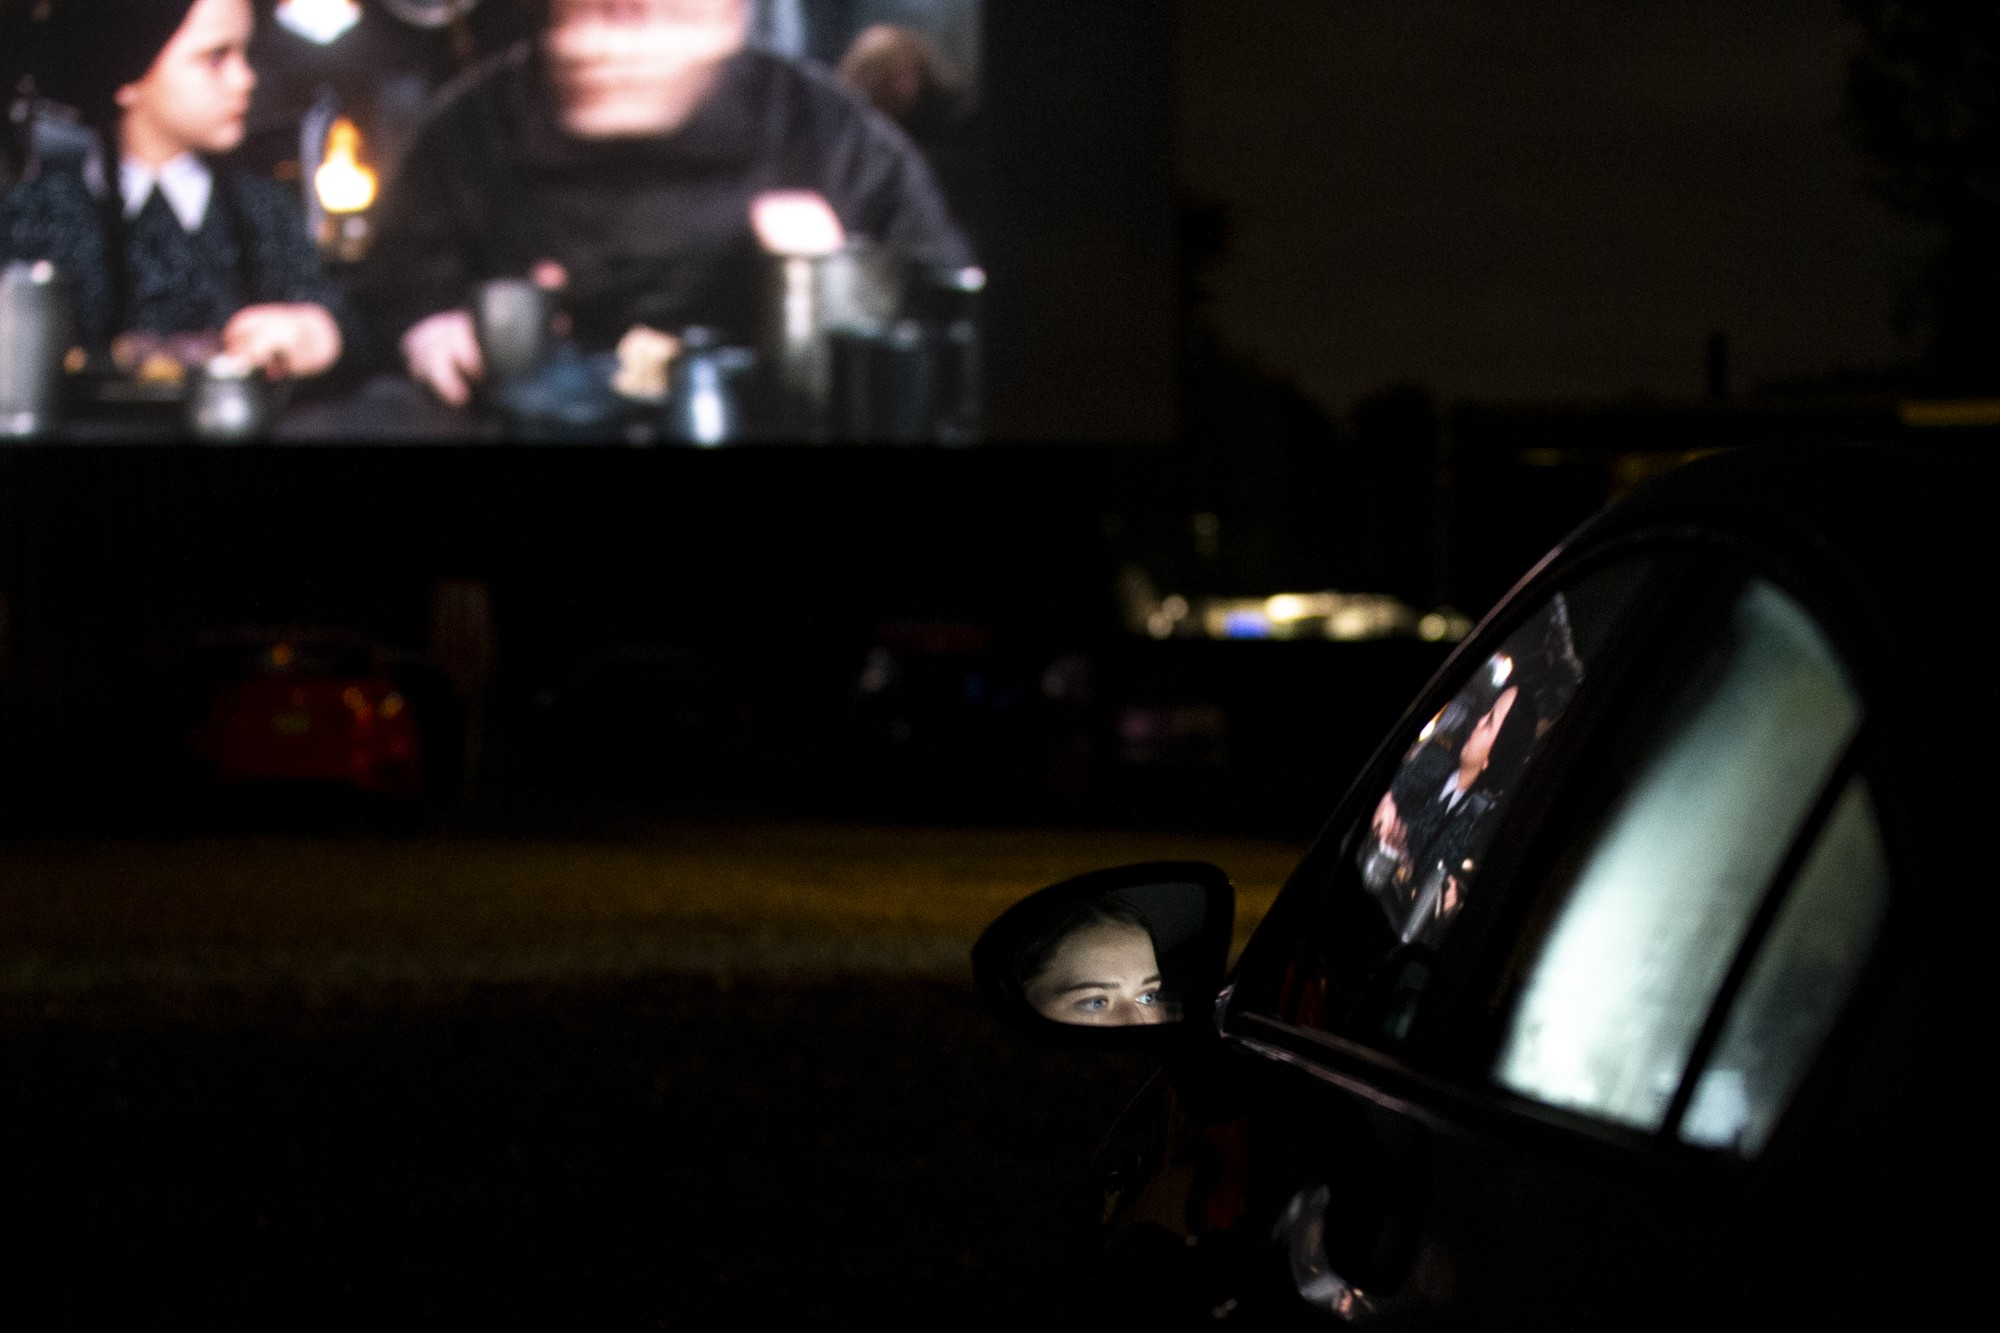 Mara Brooks and Olivia Neff do their online homework as they watch 'Hocus Pocus' and the live action 'The Addams Family' at the Starlite drive-in of Amelia, OH. Brooks and Neff are big fans of the drive-in and 'Hocus Pocus' so they felt they had to buy tickets for the screening the weekend of Oct. 4, 2020. (Jesse Jarrold-Grapes. For The Post)